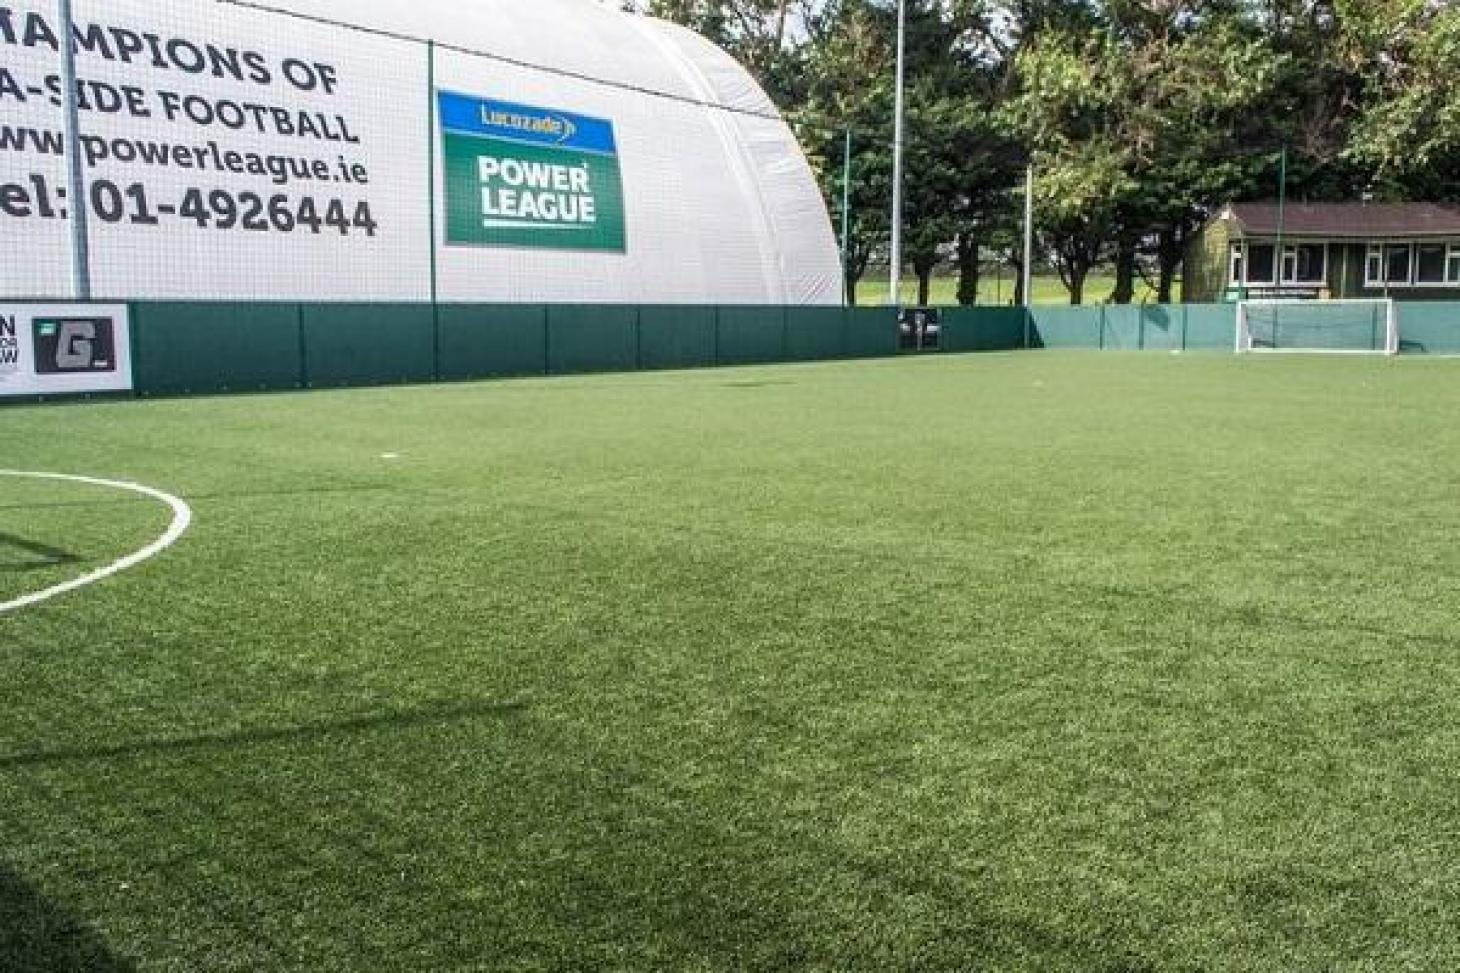 Powerleague Spawell 7 a side | 3G Astroturf football pitch